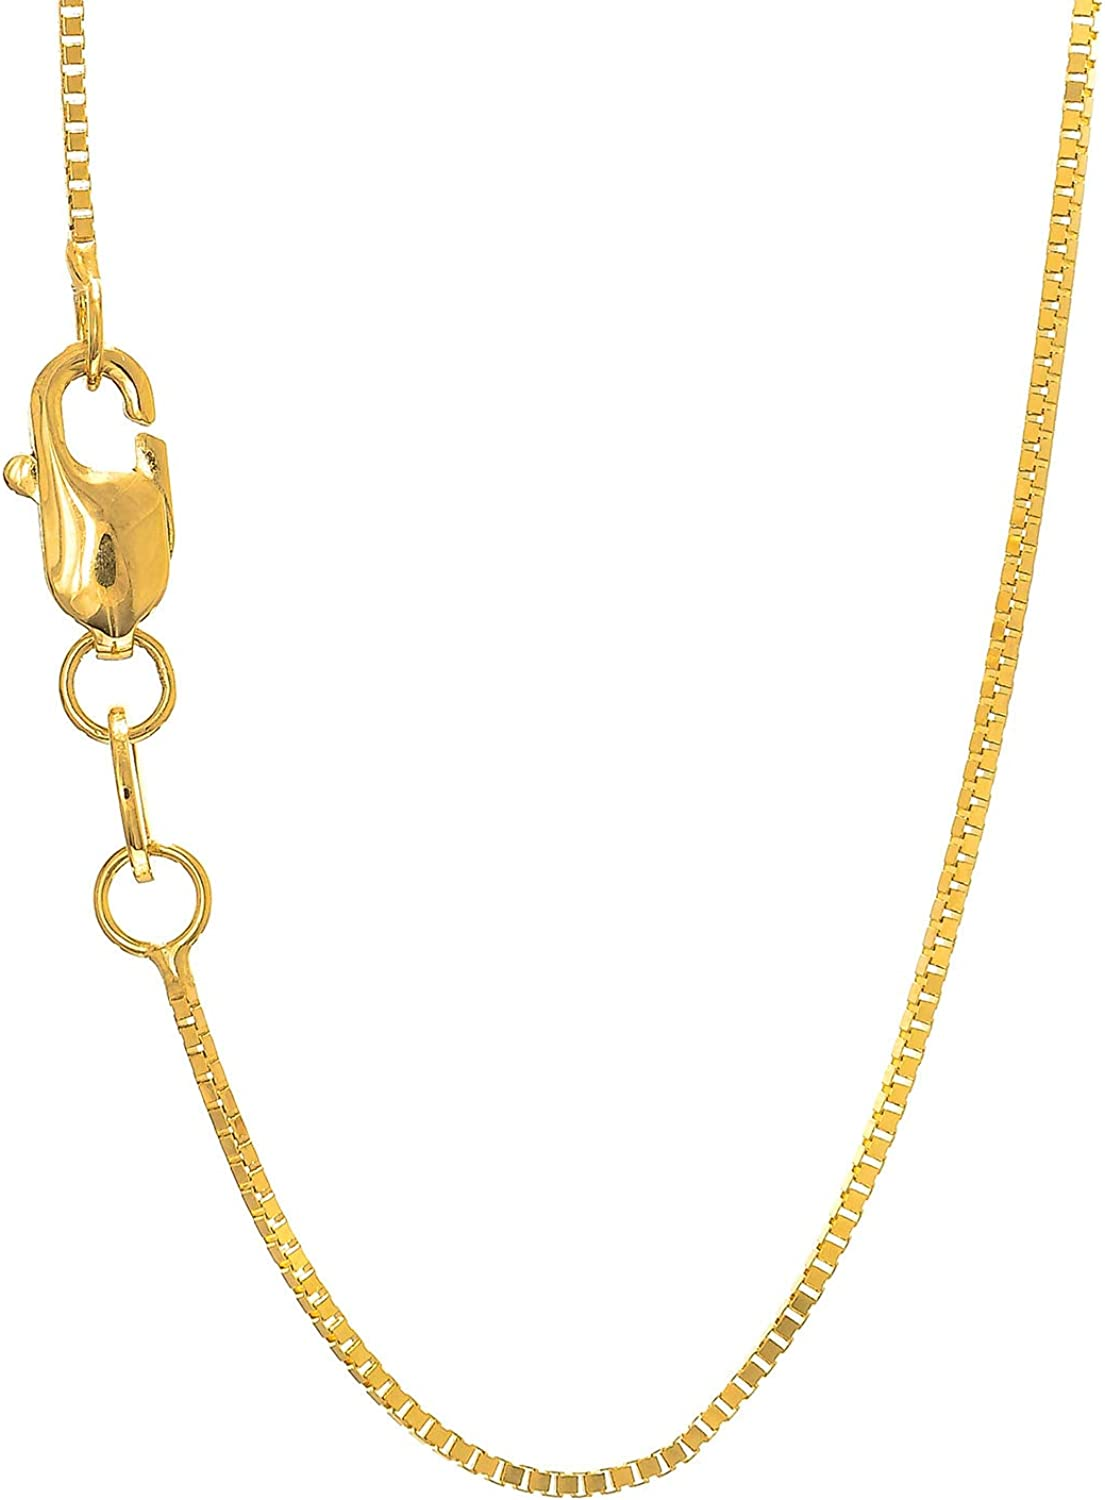 B00X62FRKW 14k Solid Gold Yellow White or Rose 0.8 mm Box Chain Necklace 617tzyr9XaL